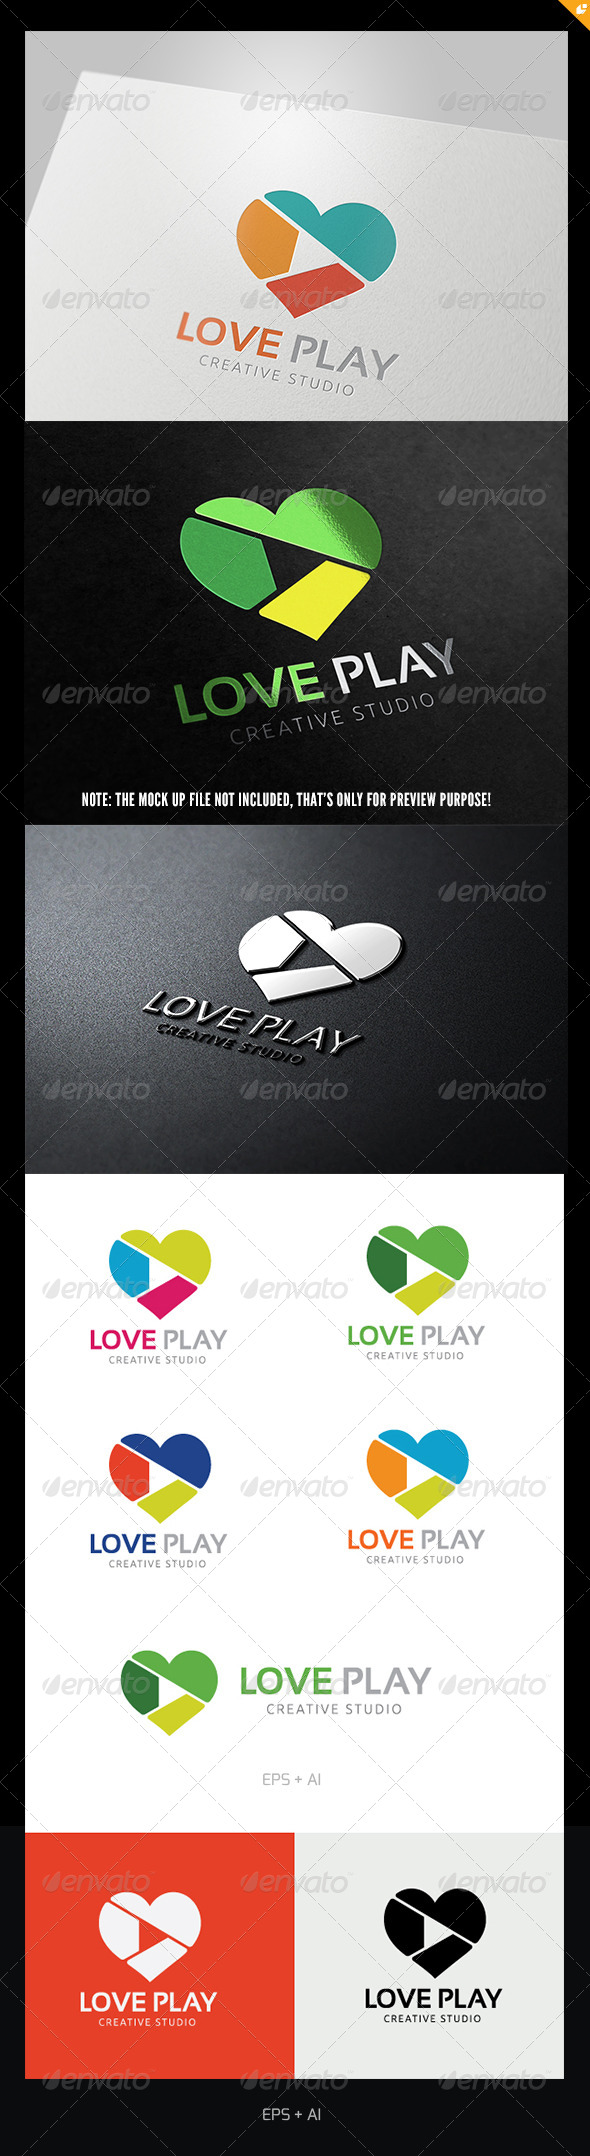 Love Play - Vector Abstract